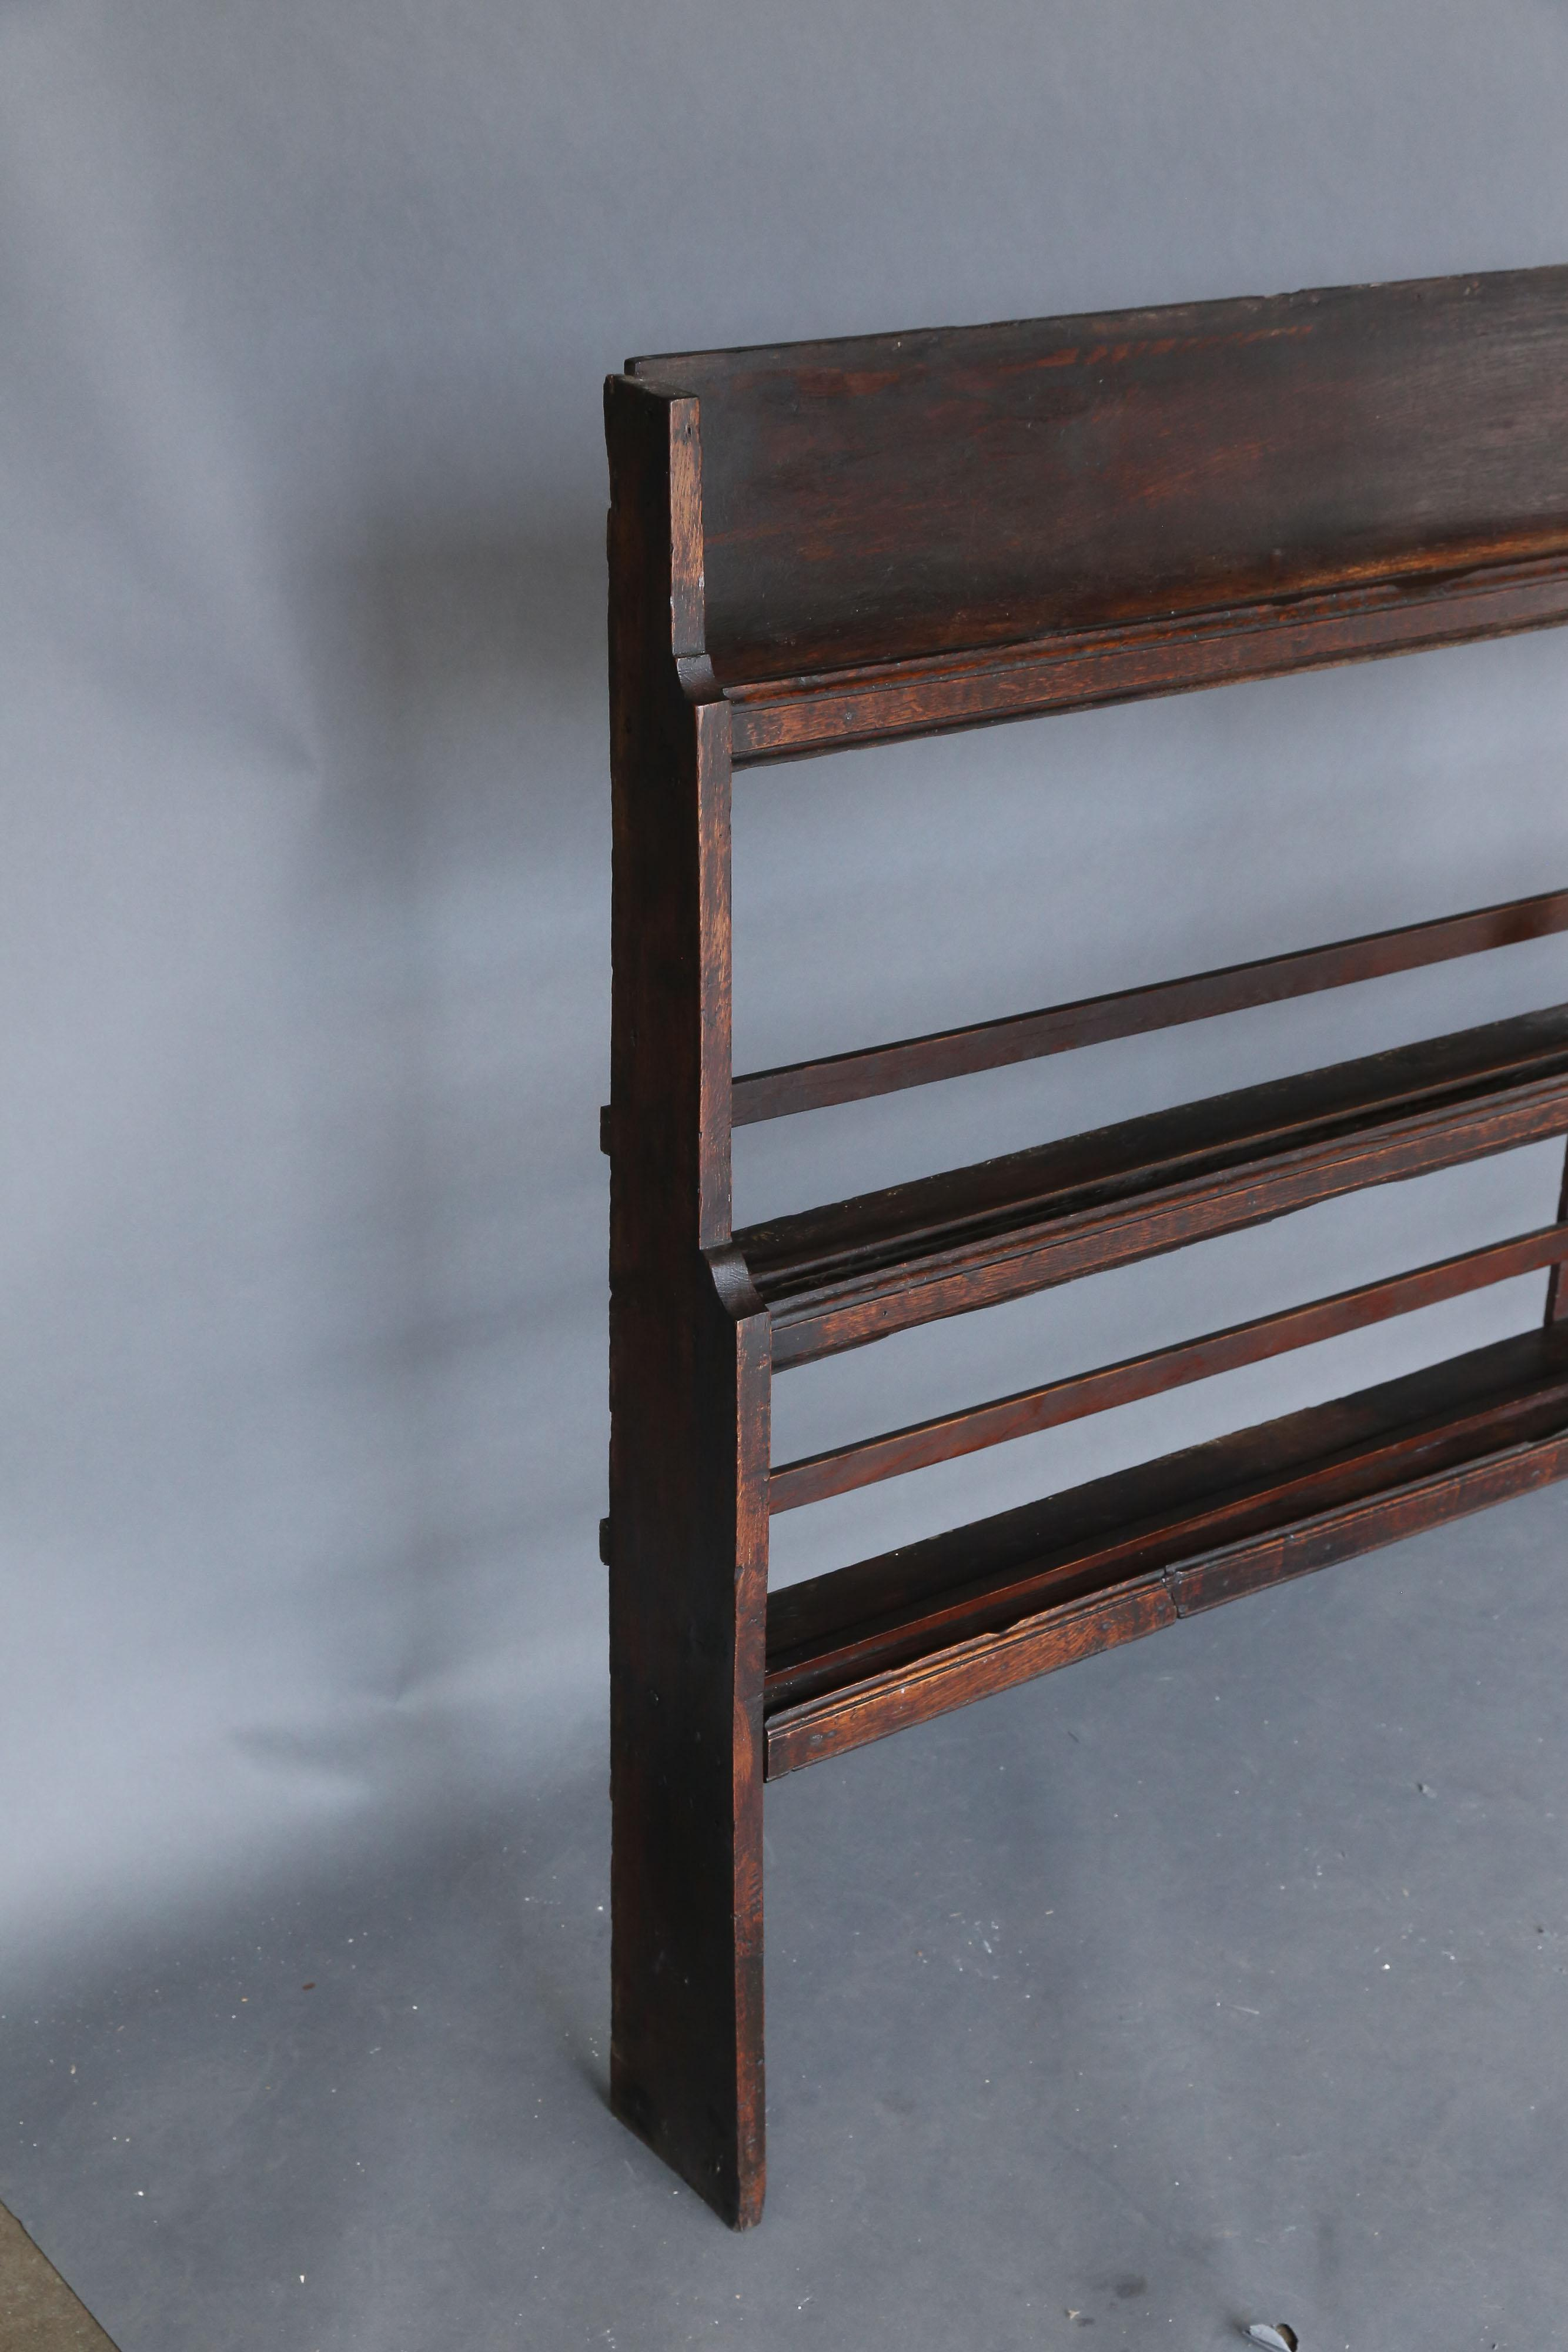 19th Century Oak Plate Rack - Image 4 of 10  sc 1 st  Decaso & High-End 19th Century Oak Plate Rack | DECASO